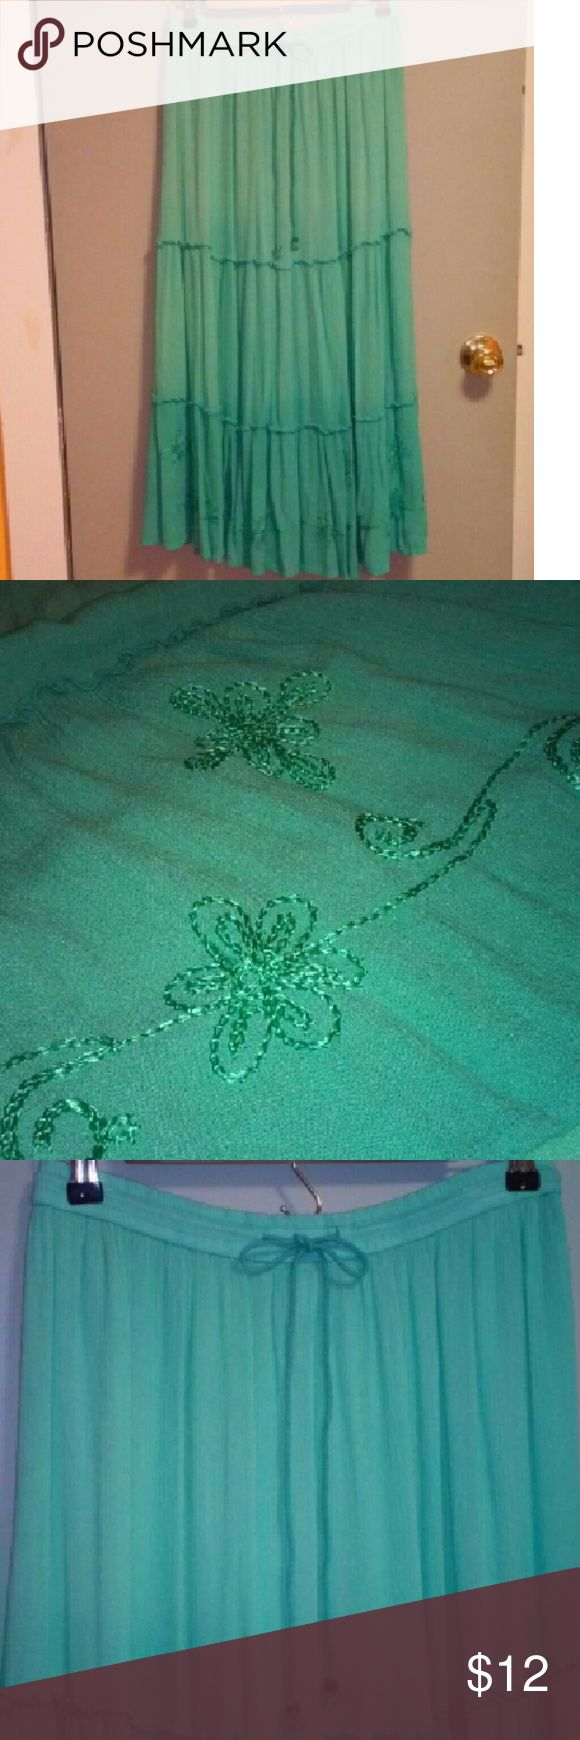 Like new maxi skirt Like new, a light green turquoise color, elastic waist with drawstring for adjustment, length is 35 inches, has flower embroidery on the front bottom of skirt in matching thread, no pockets, size 4-6 Skirts